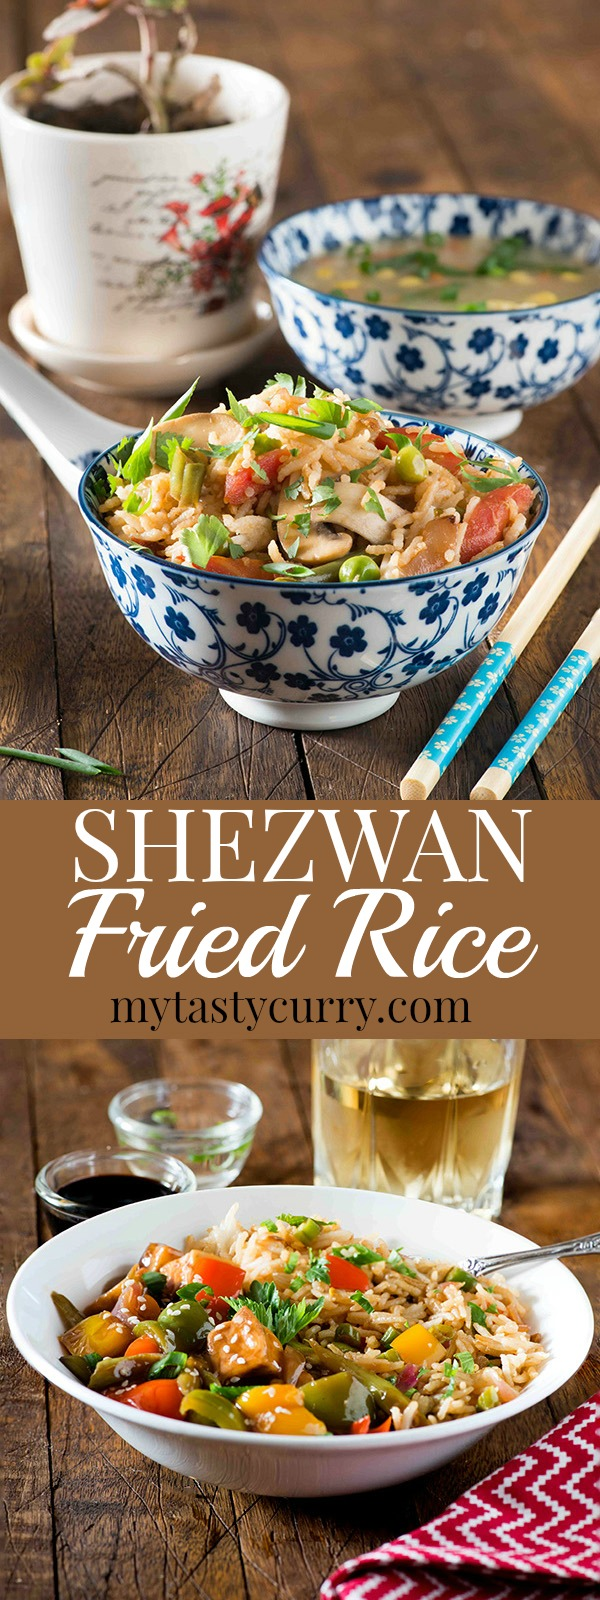 Chinese Schezwan fried rice recipe in 20Minutes.Better than take out, healthy, Super quick, spicy and delicious to the core. #20Minutes #FriedRice #Chinese #BetterThanTakeout